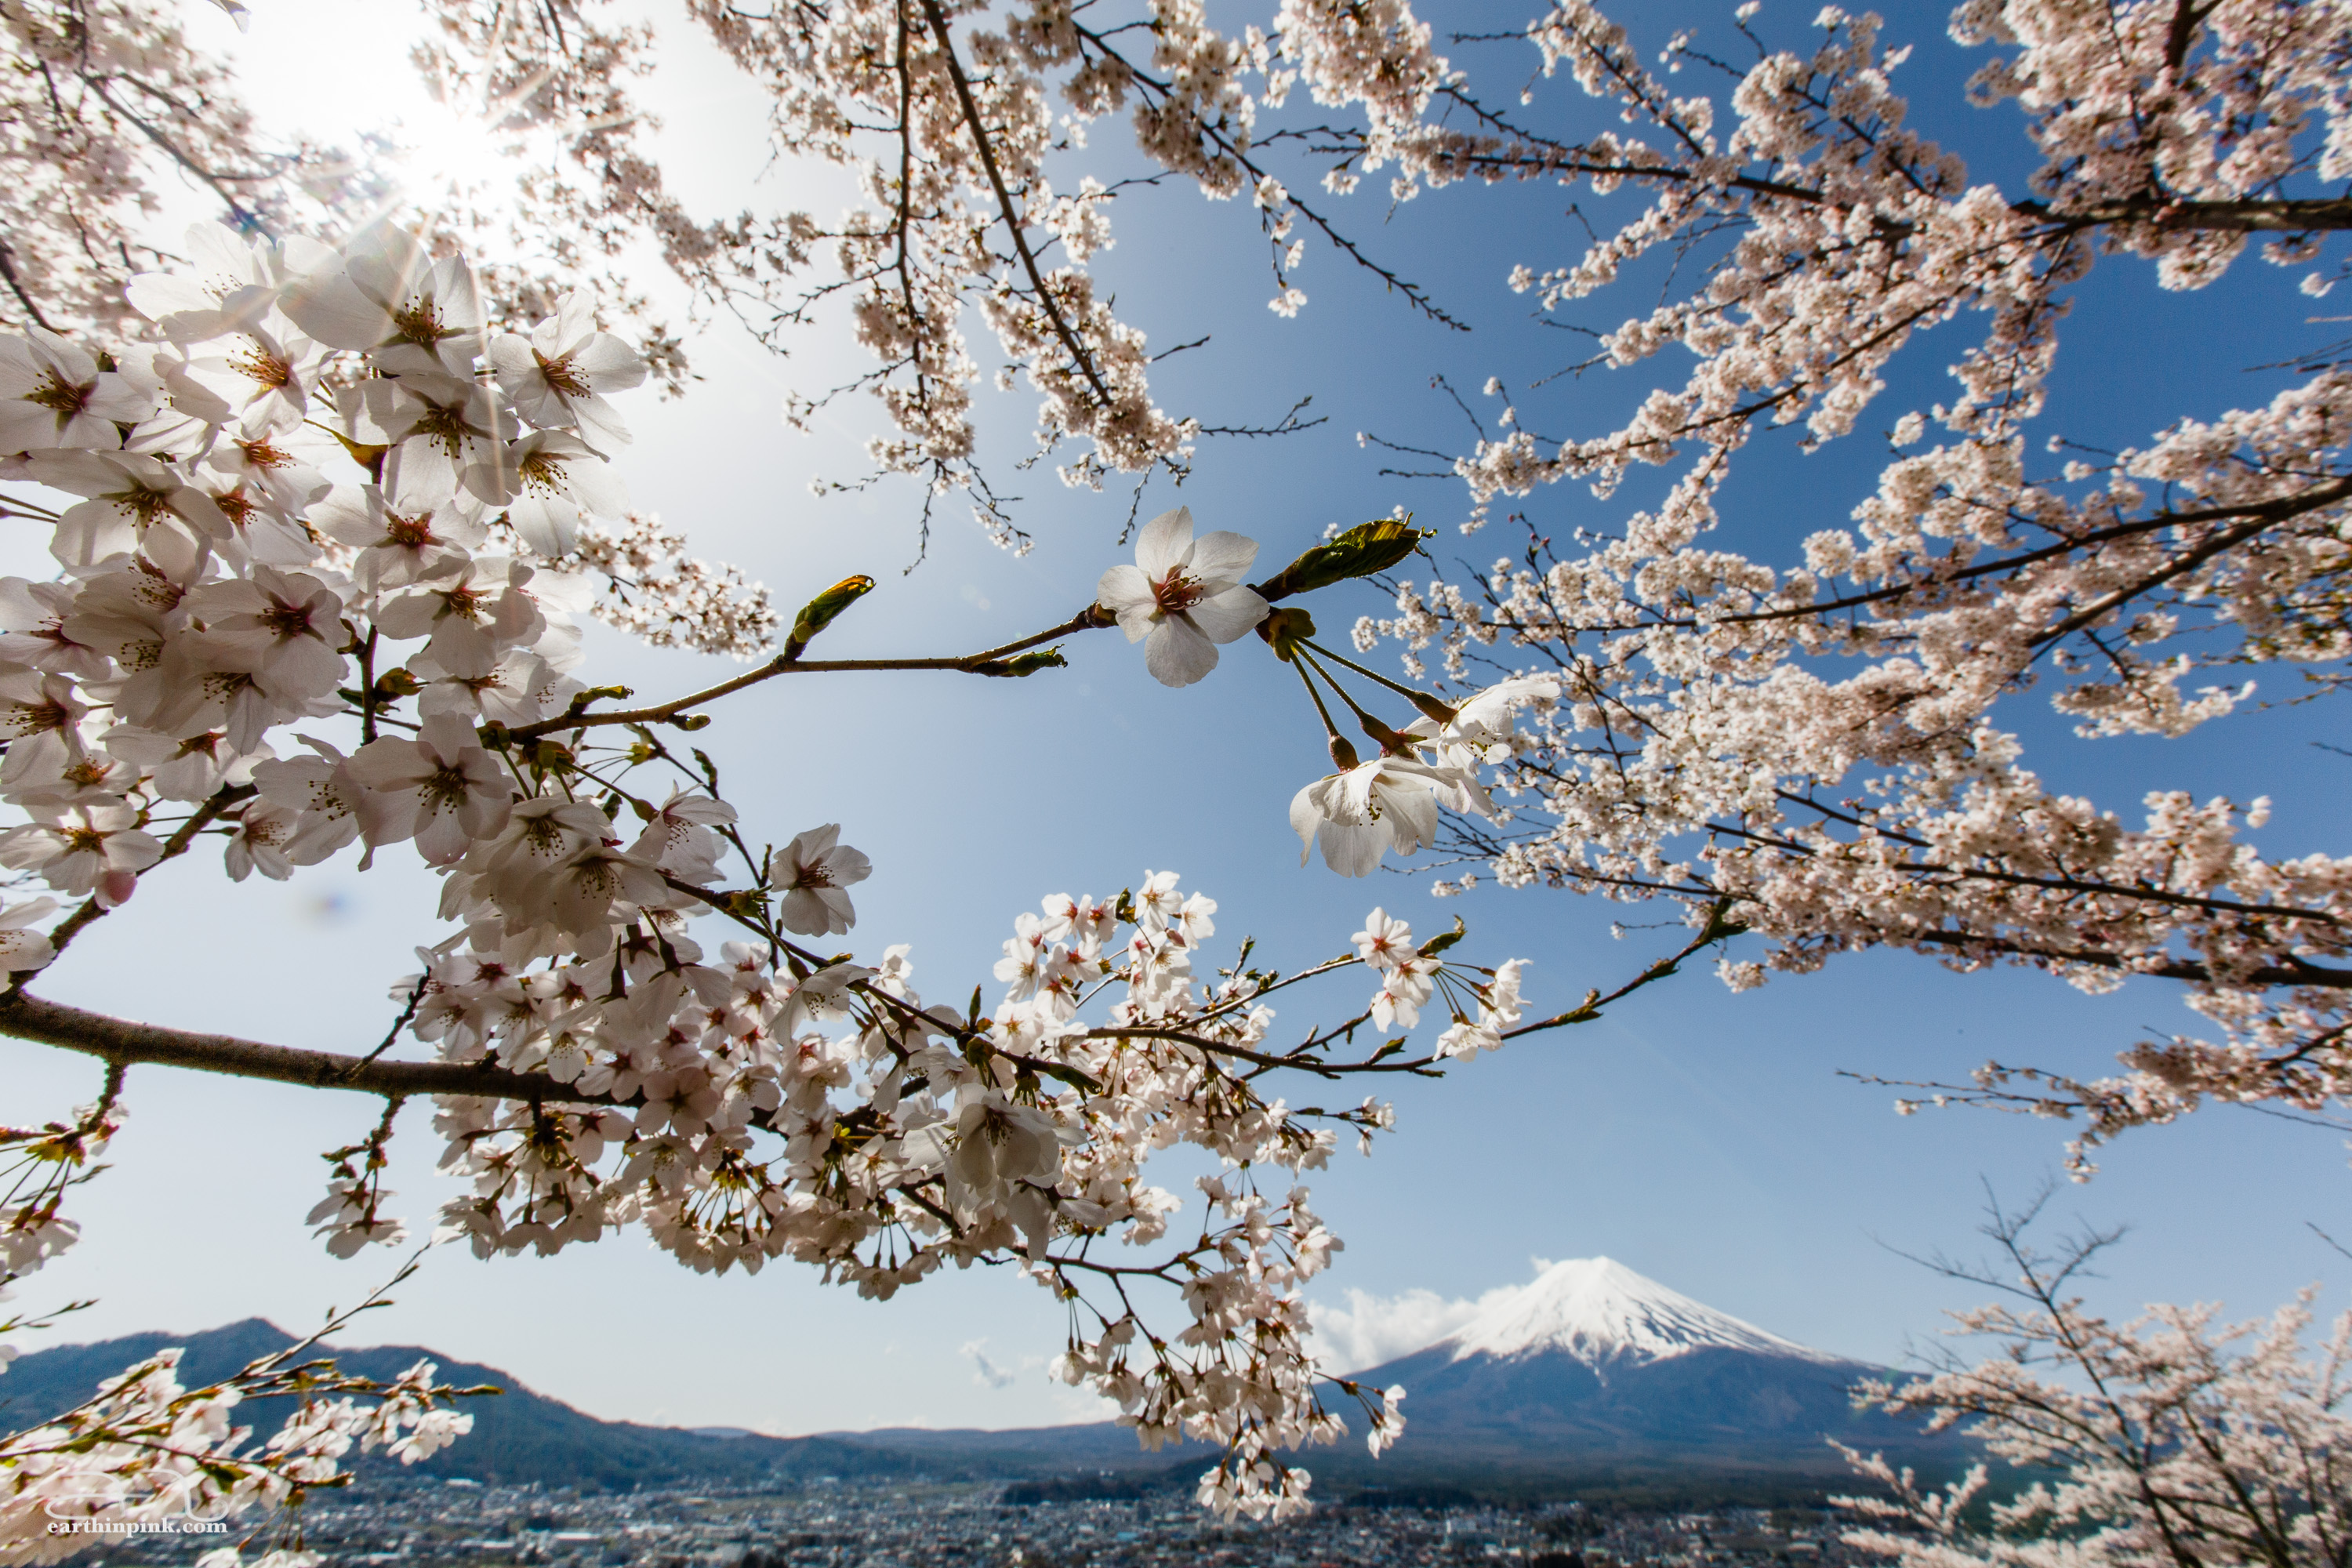 View of Mount Fuji among cherry blossoms from the park next to Kawaguchi Asama Shrine. Probably the best sakura-viewing day trip outside of Tokyo on a clear day.